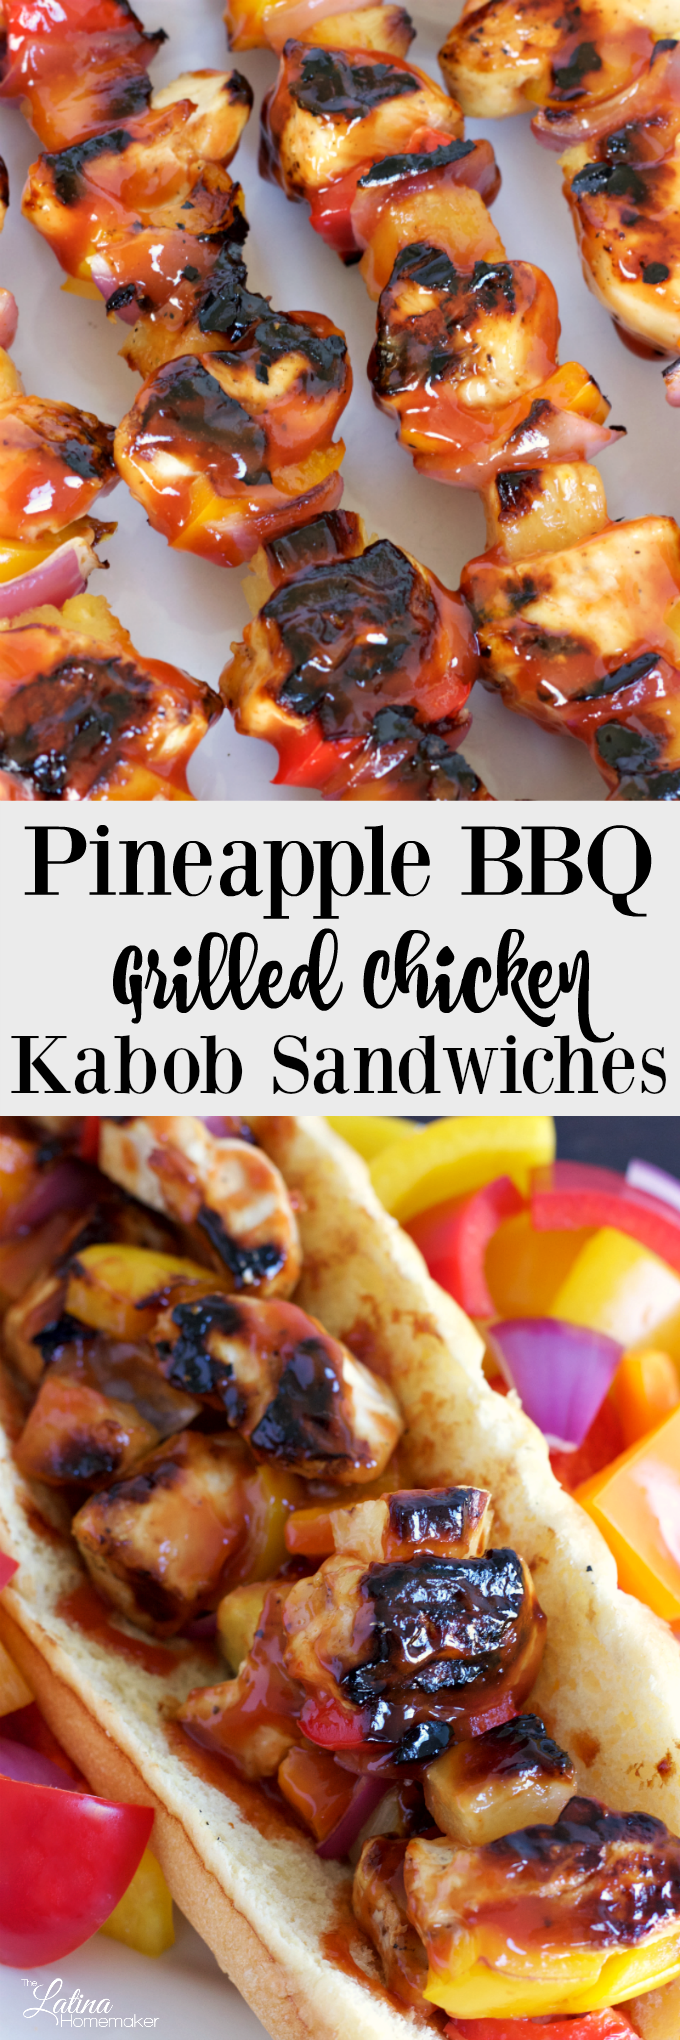 Pineapple BBQ Grilled Chicken Kabob Sandwiches – These deliciously grilled chicken kabobs are slathered with a savory pineapple BBQ sauce and served on a toasted hoagie roll. It's sure to be a hit!